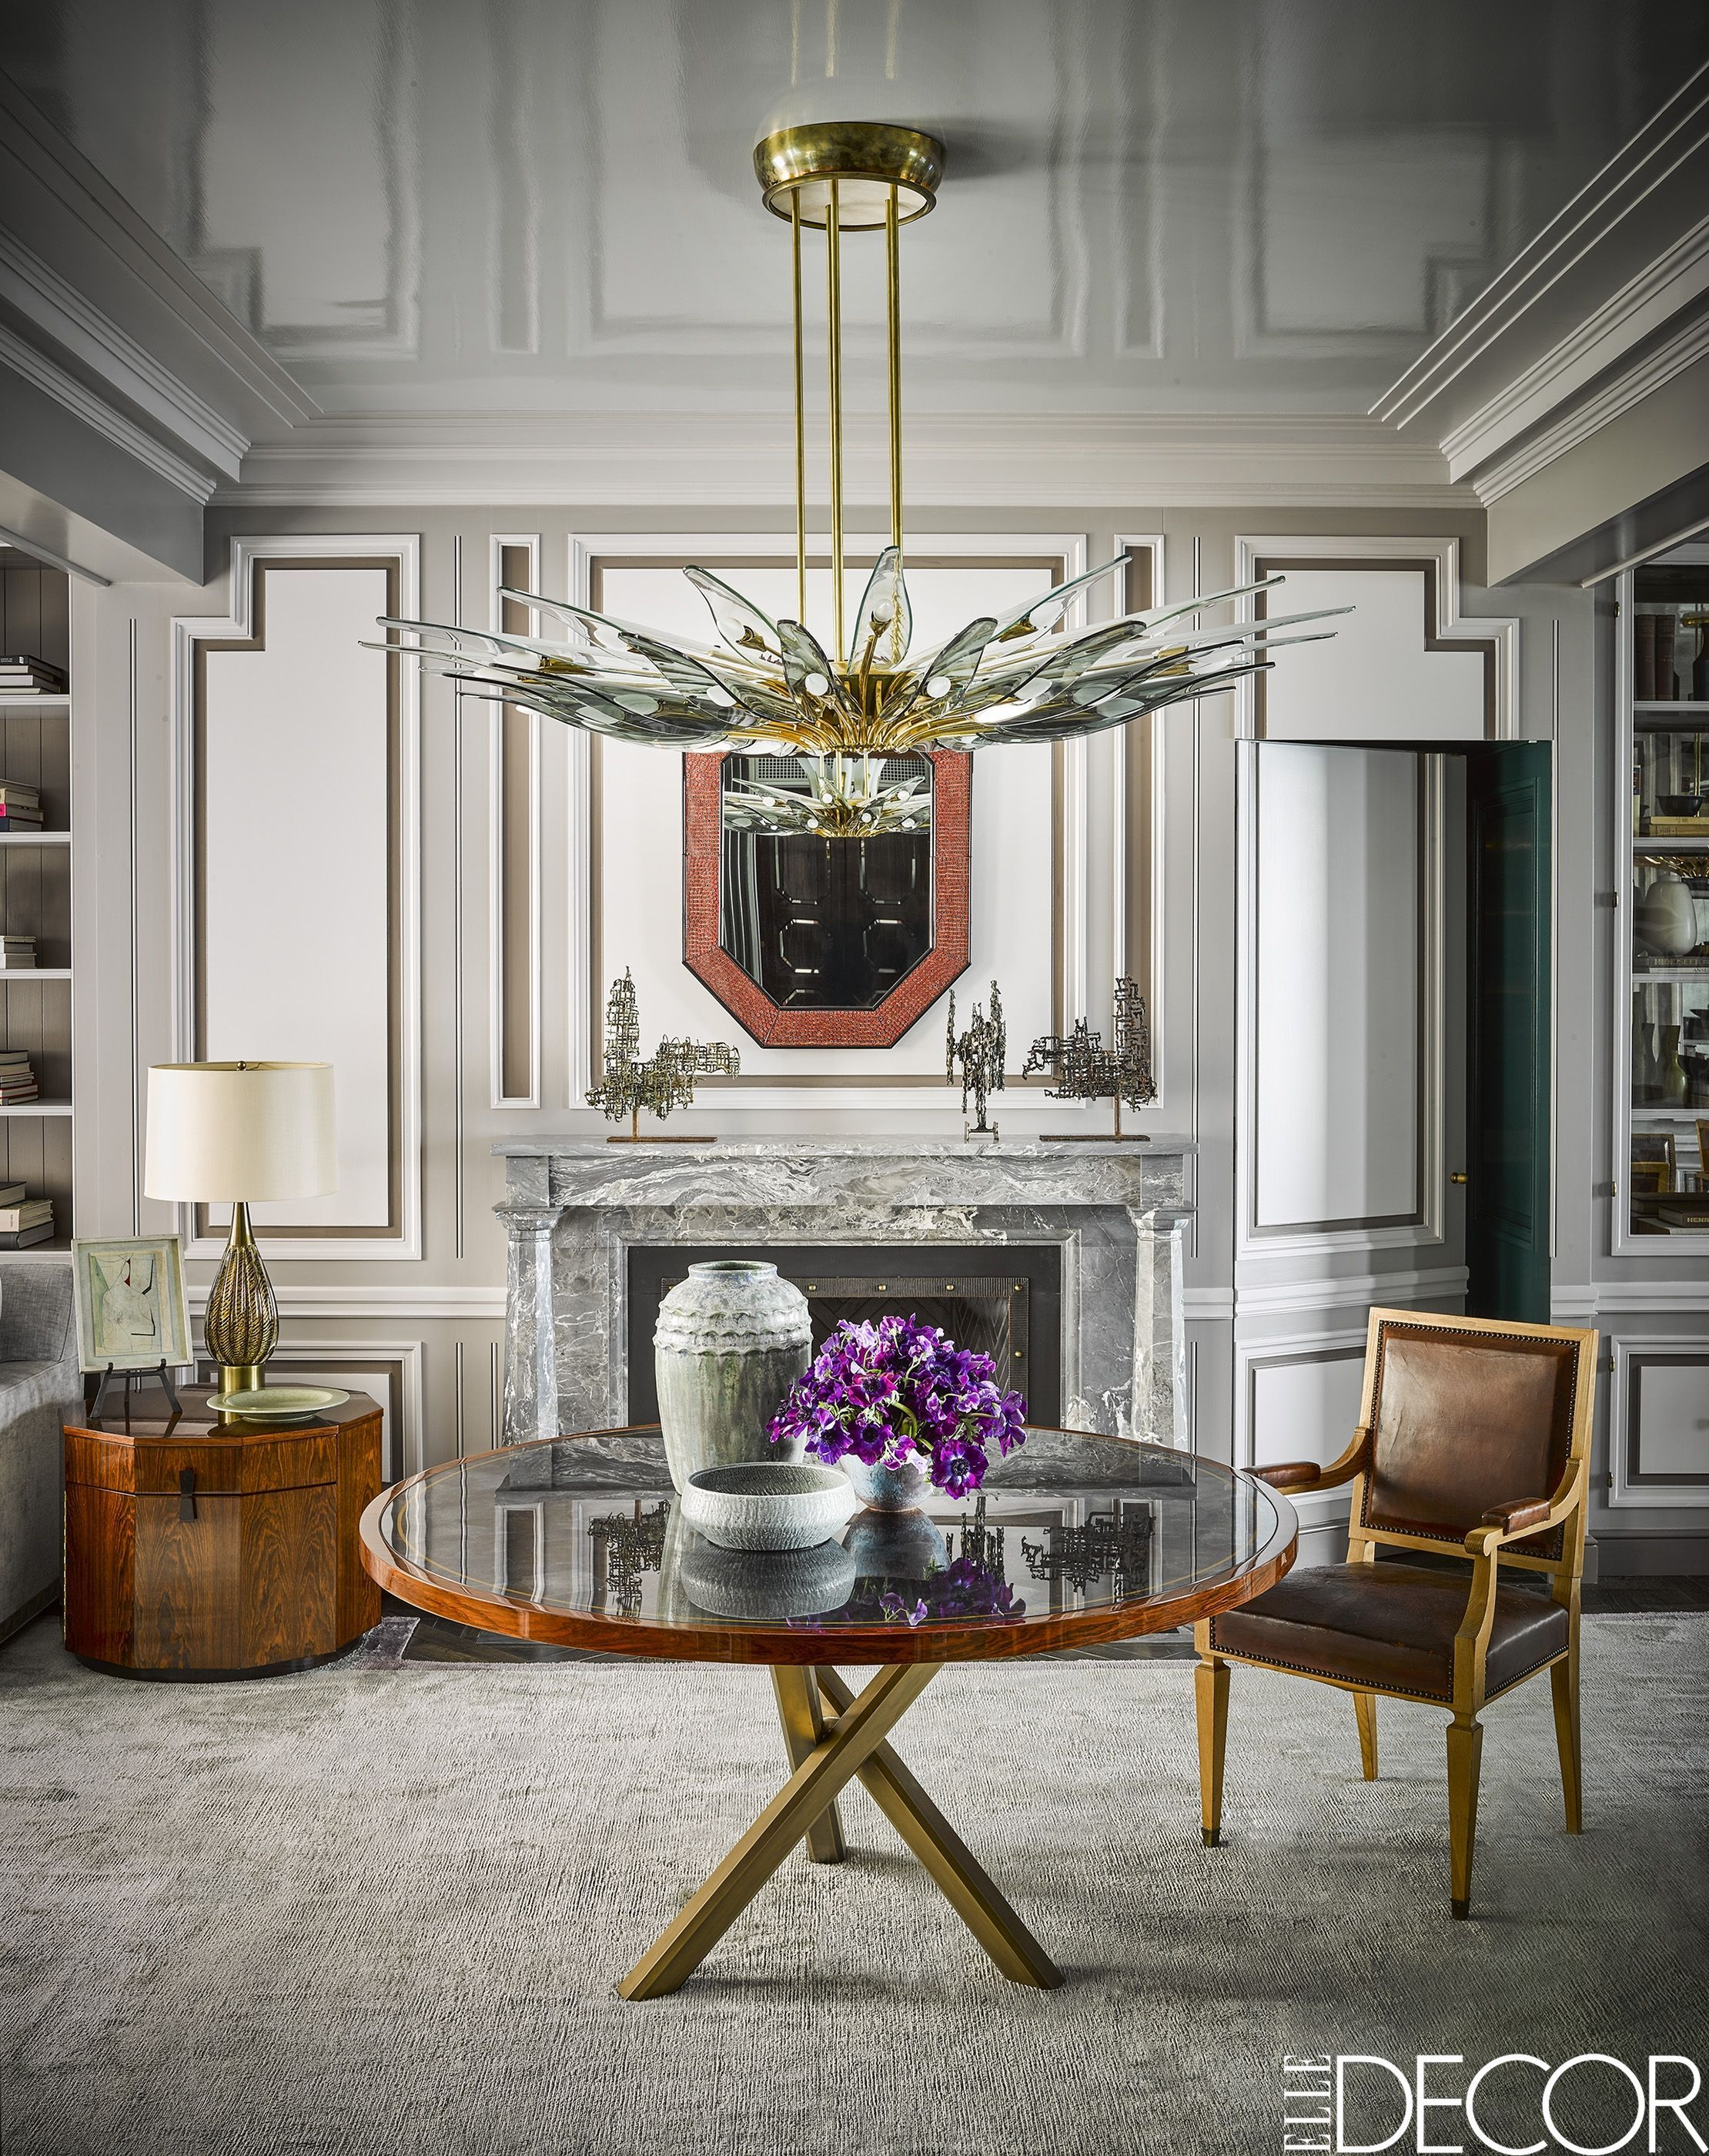 Interior Design For Living Room Photo Gallery: This Art Deco Apartment In Chicago Is All About Personal